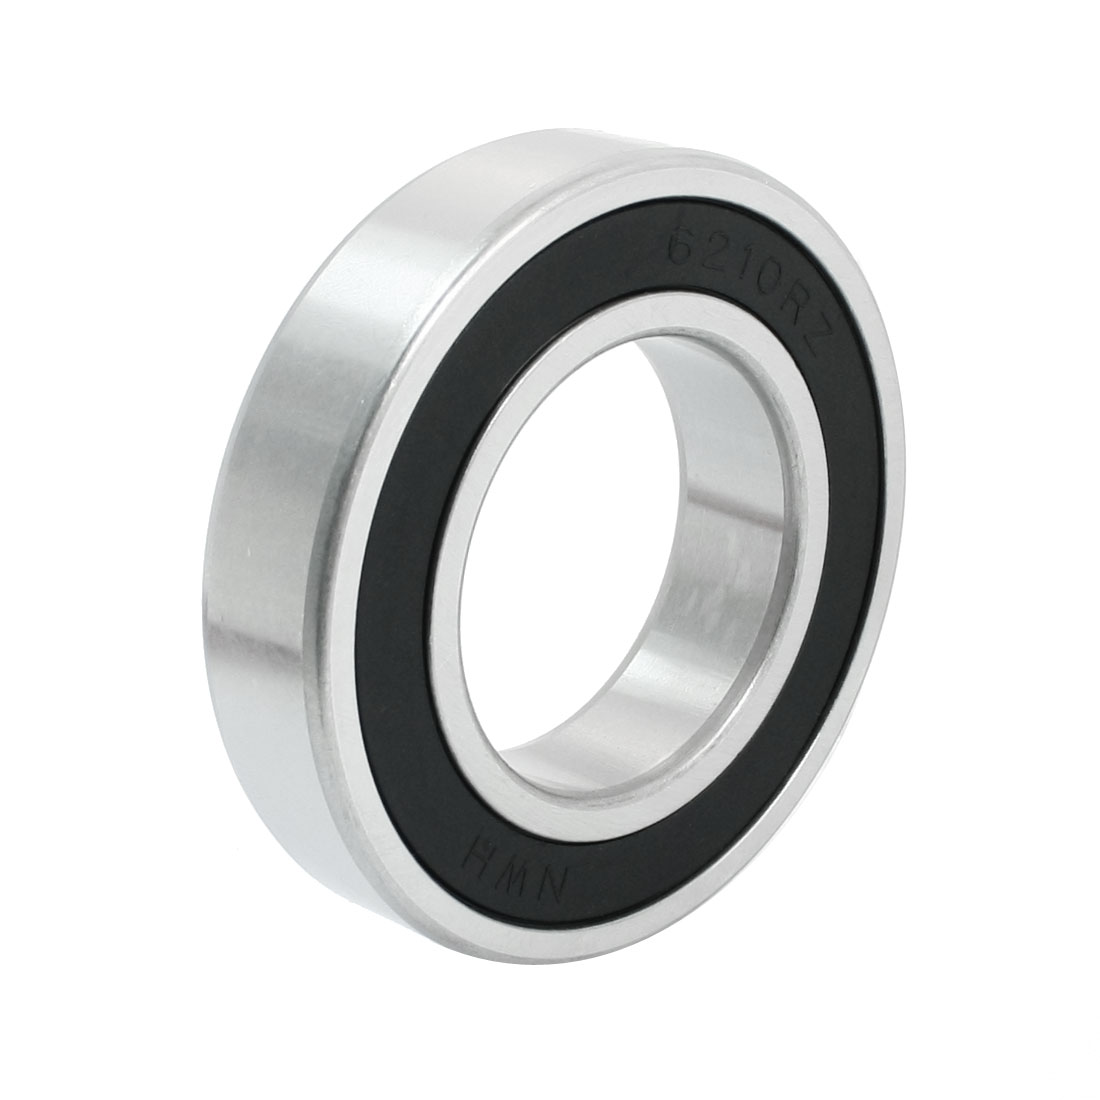 6210-2Rs Radial Ball Bearing Double Sealed Bore Dia 50Mm Od 90Mm Thick 20Mm kb035cpo sb035cpo prb035 radial contact ball bearing size 88 9 104 775 7 938mm